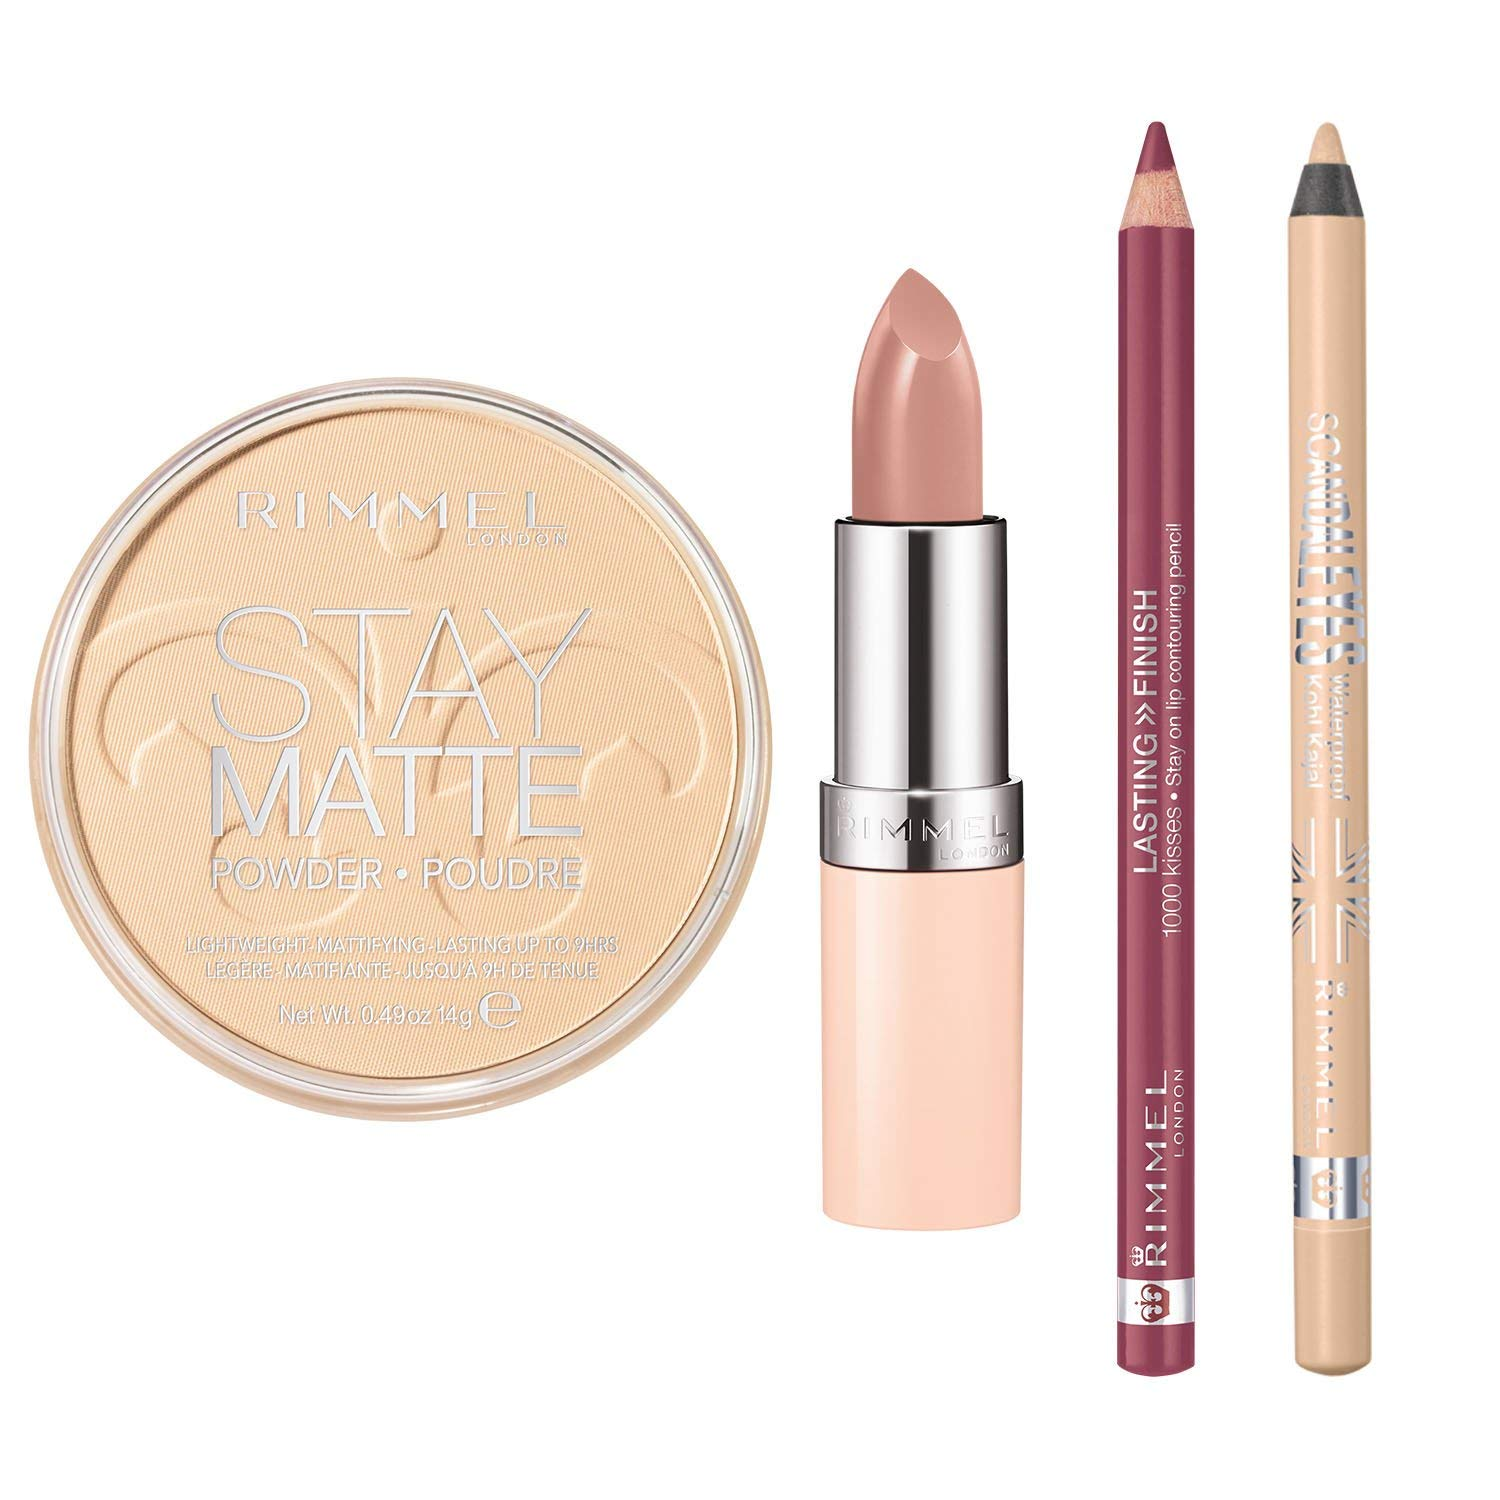 Color me nude lip concealer